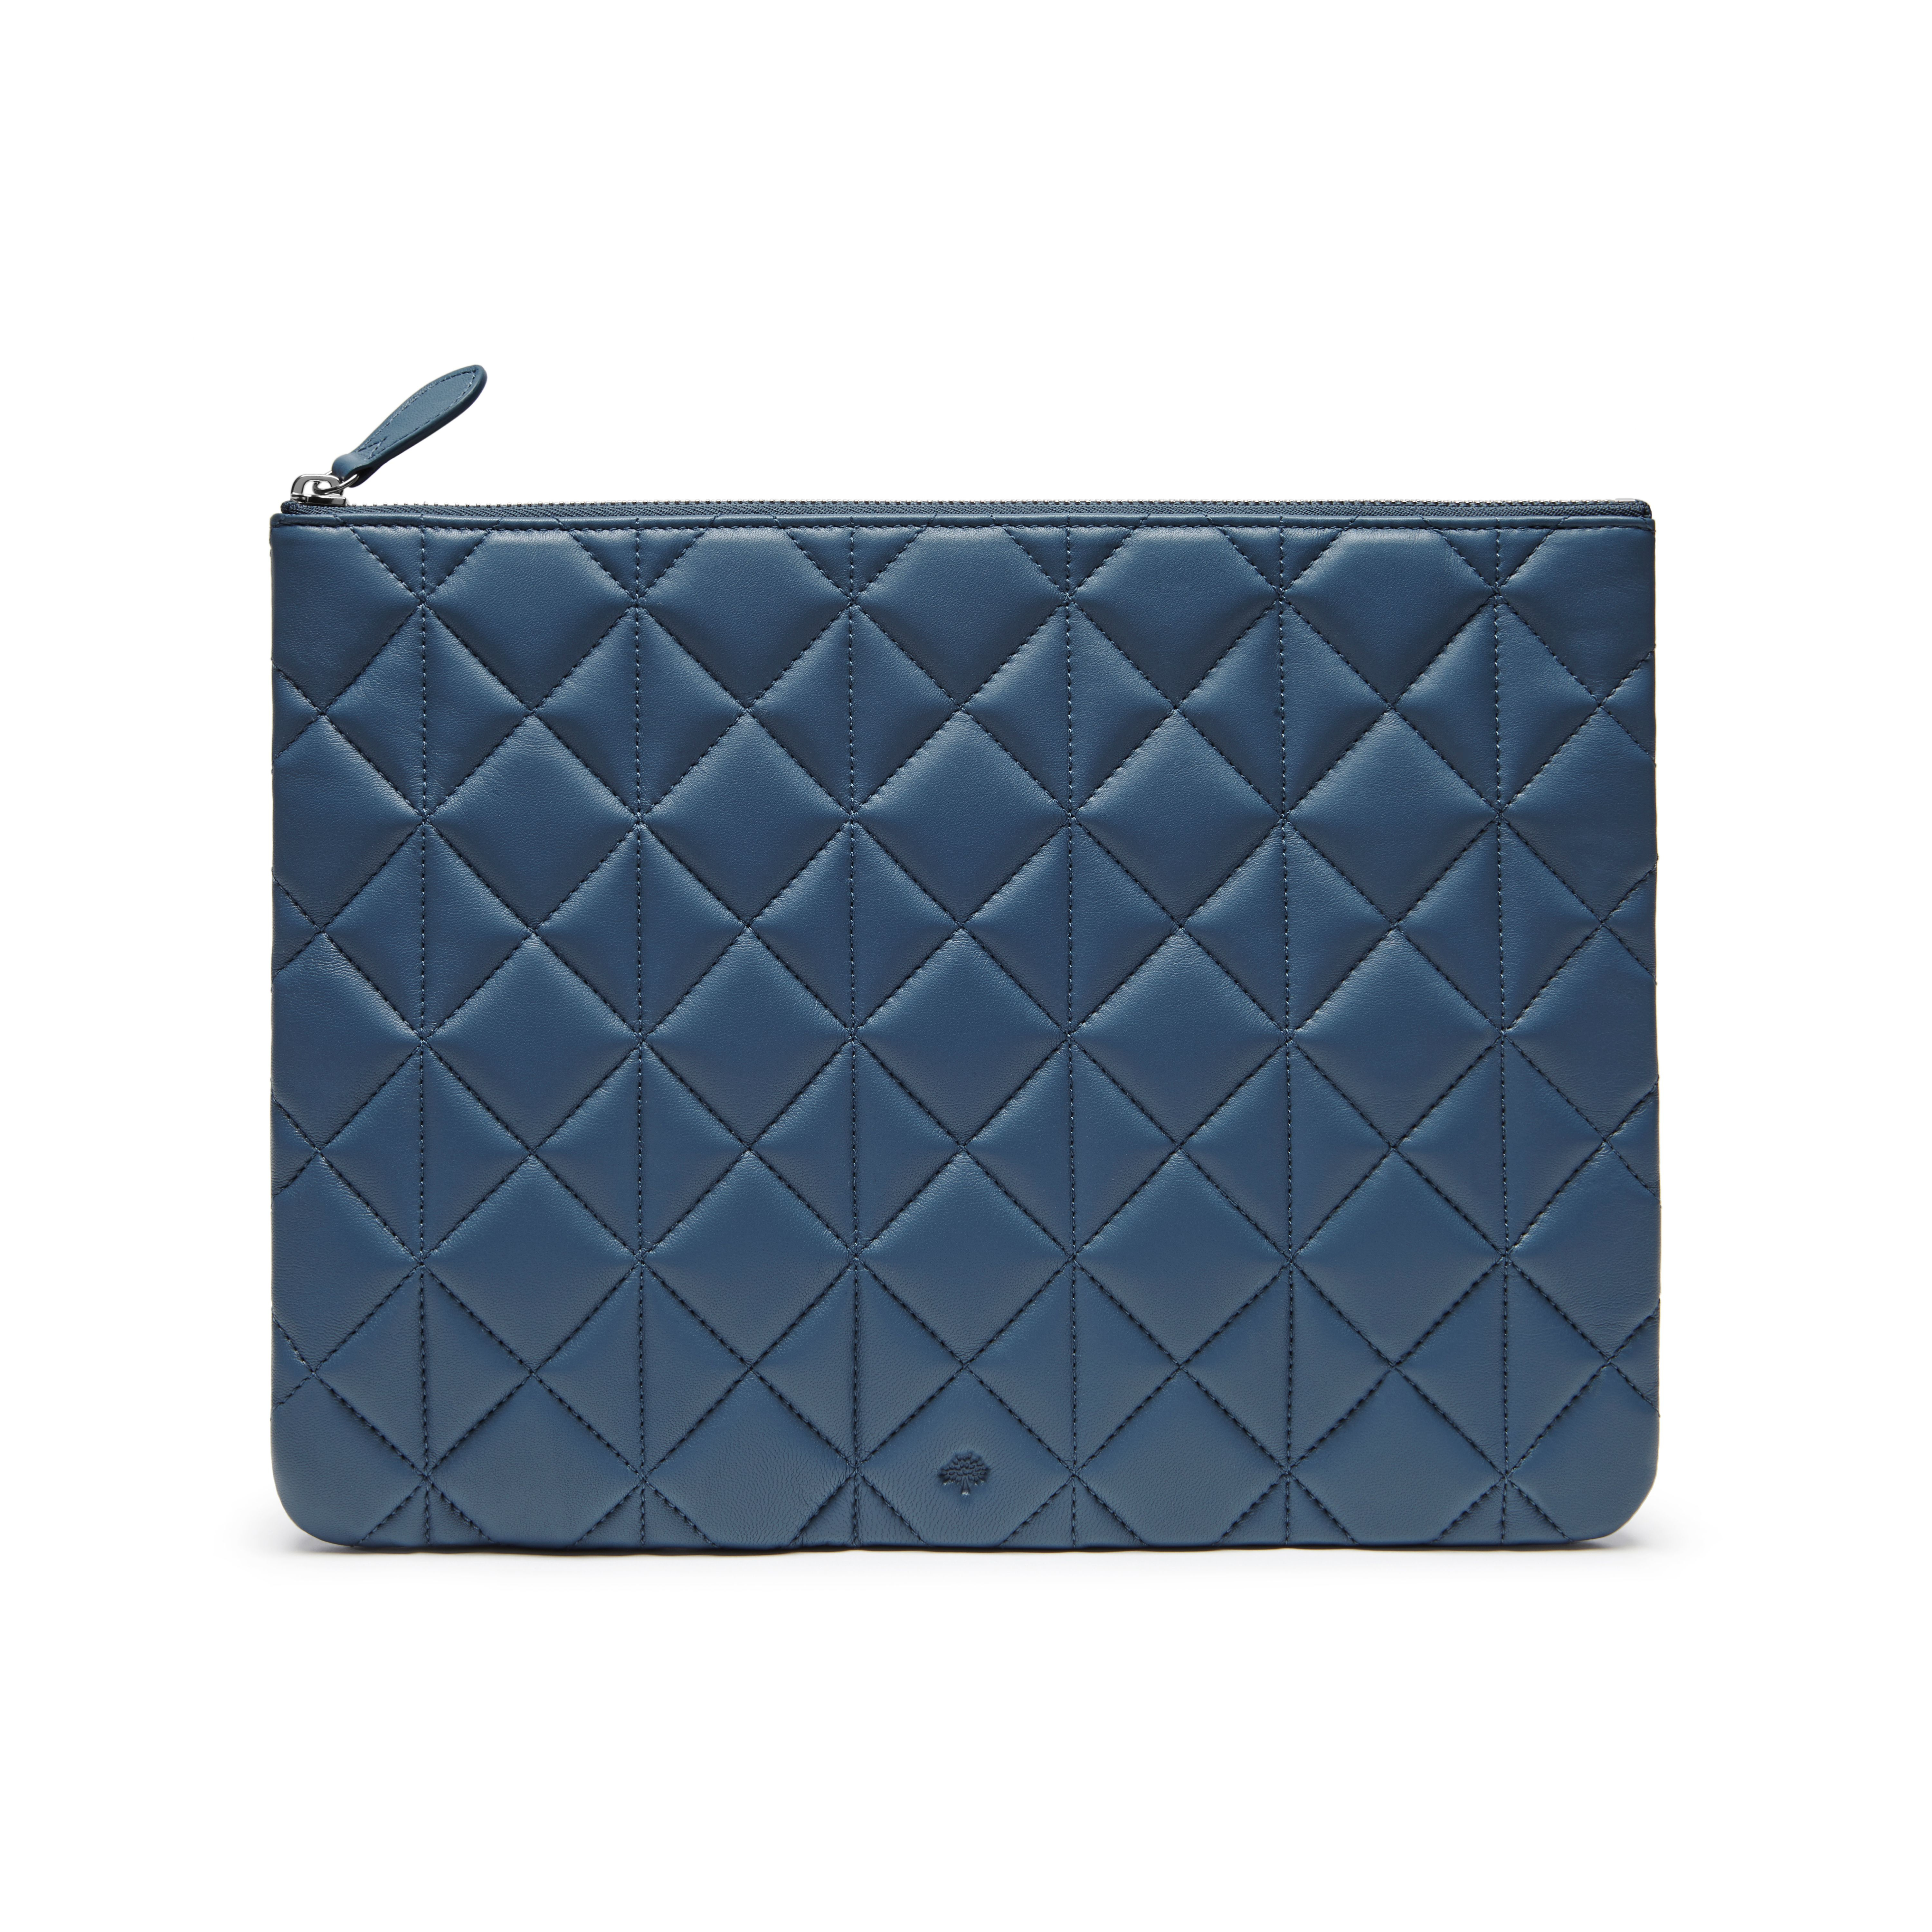 bc2caa0075 Mulberry Cara Delevingne Large Pouch in Gray - Lyst